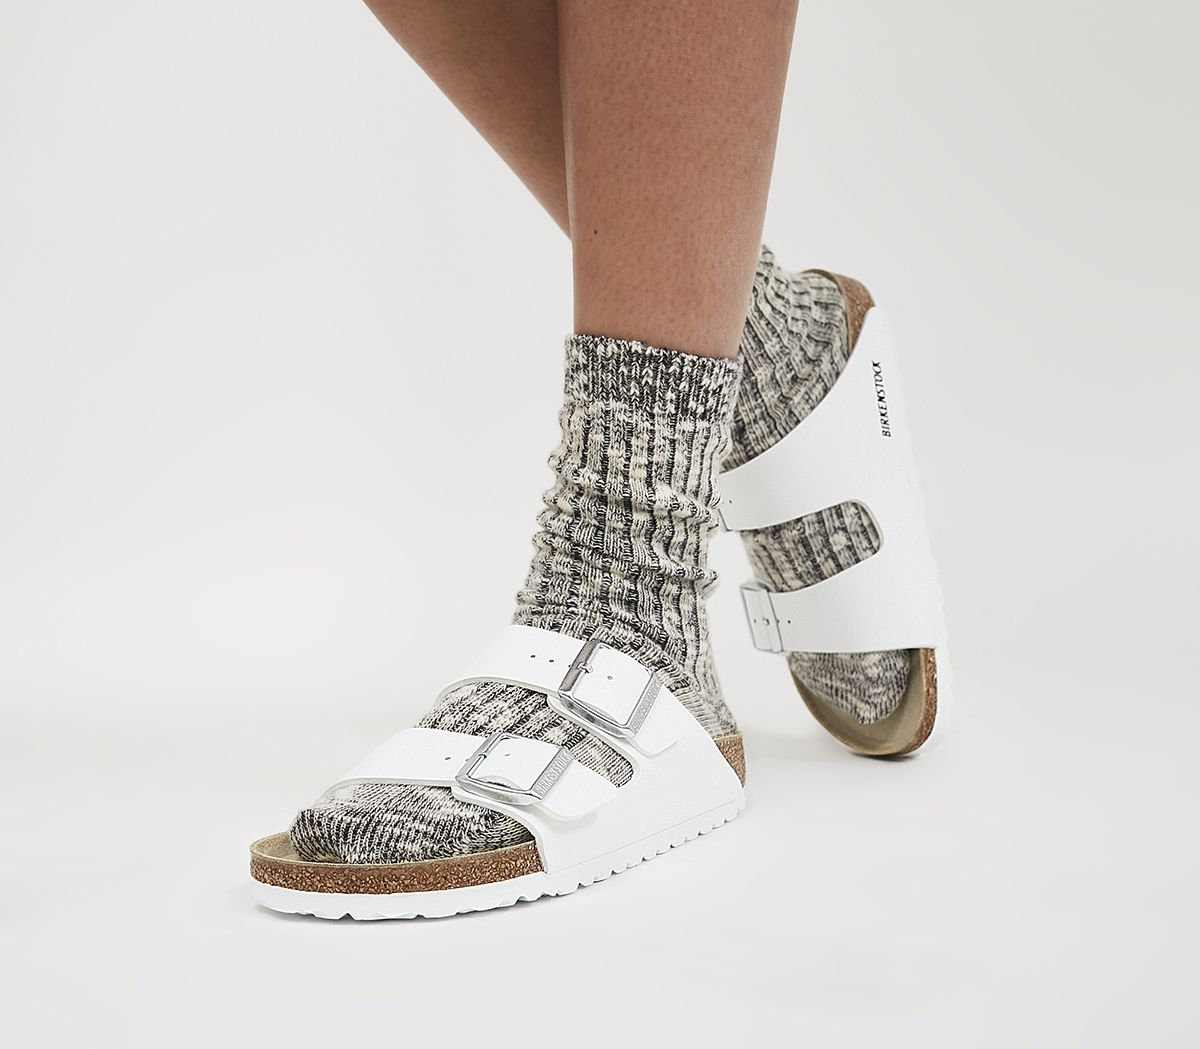 d0063fe988 Birkenstock Arizona Two Strap Sandals White Birko Flor - Sandals